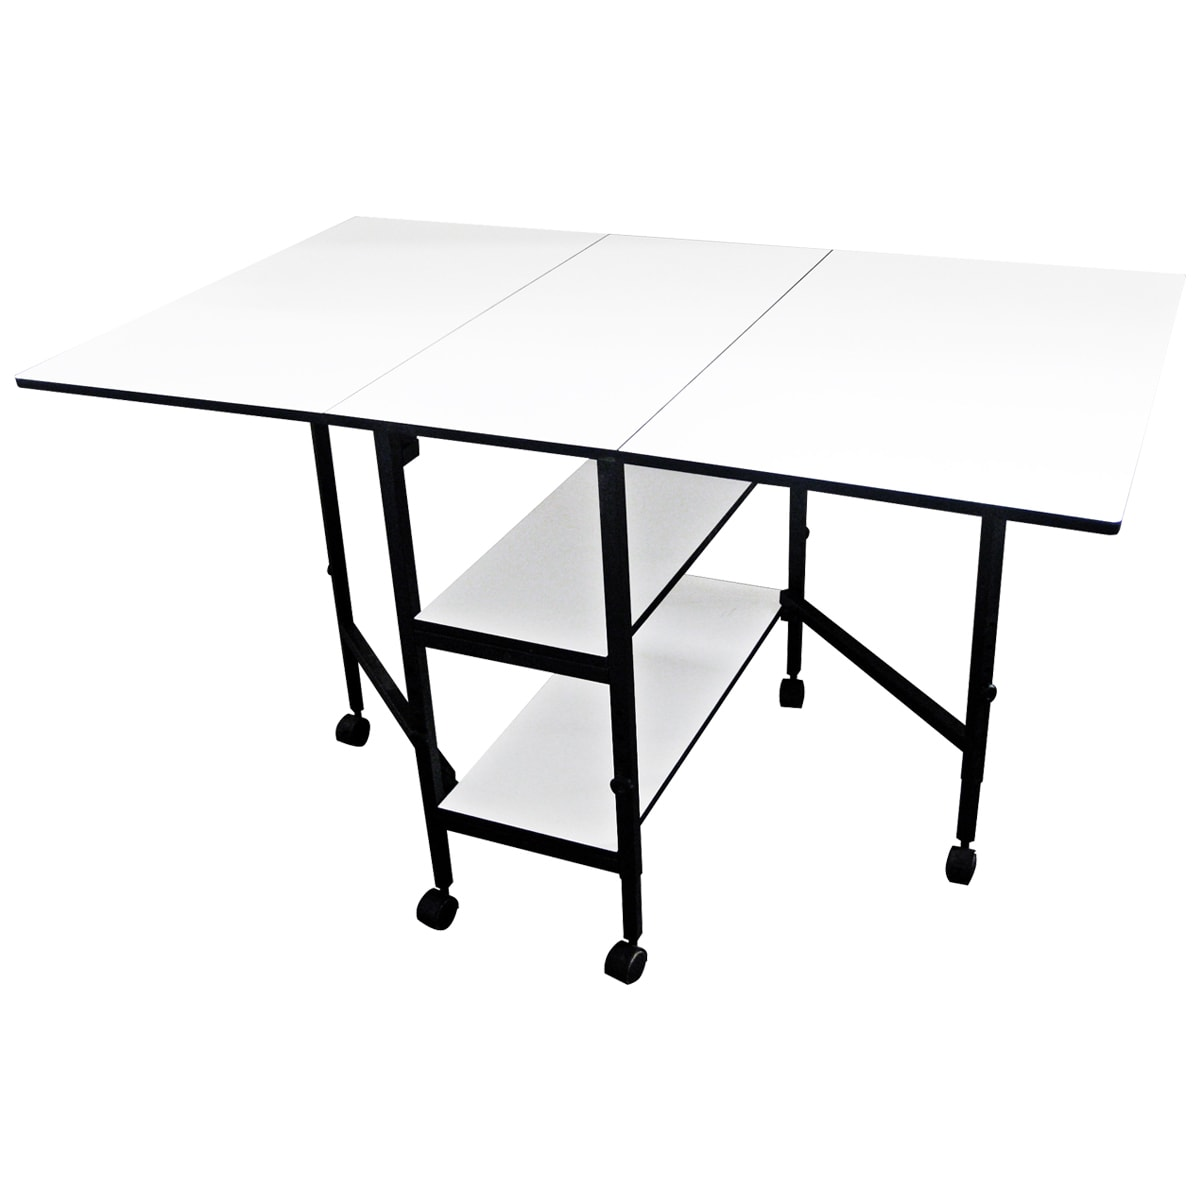 Sullivans Adjule Home Hobby Table Modern Coffee Tables And